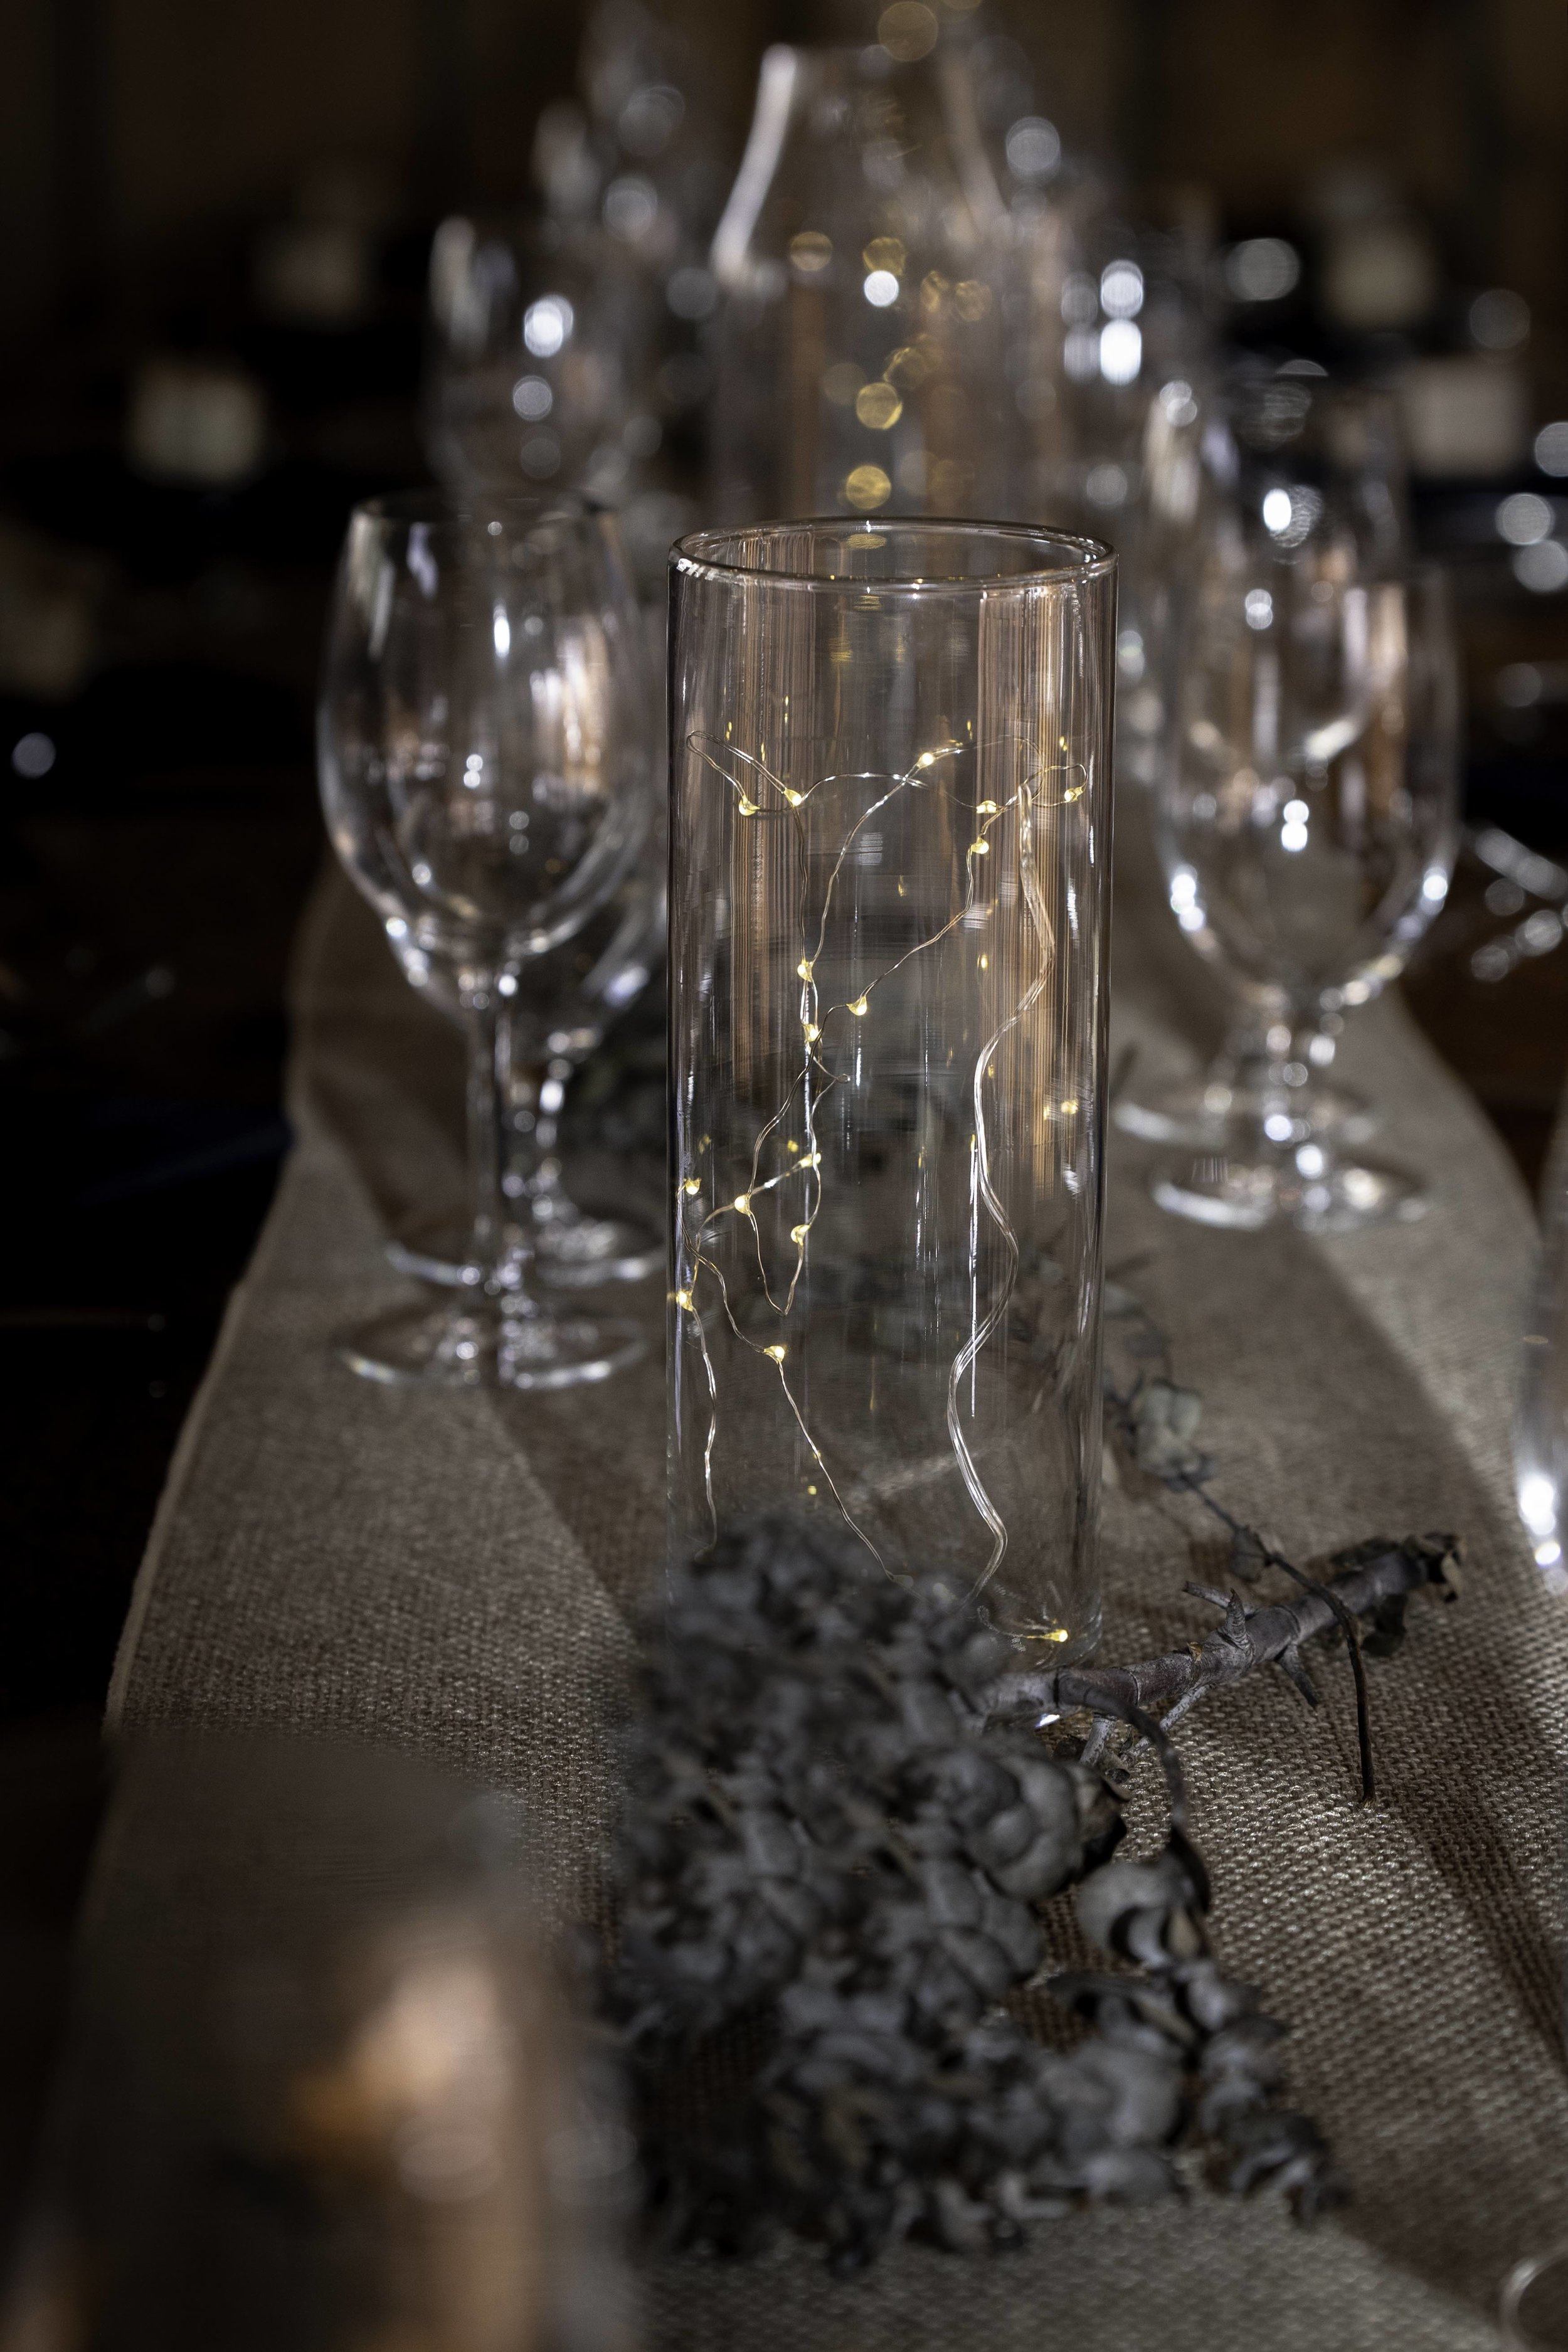 Tabletop-Wedding-Jodie-Aldred-Photography-Chatham-Kent-Elgin-Middlesex-London-Ontario.jpg